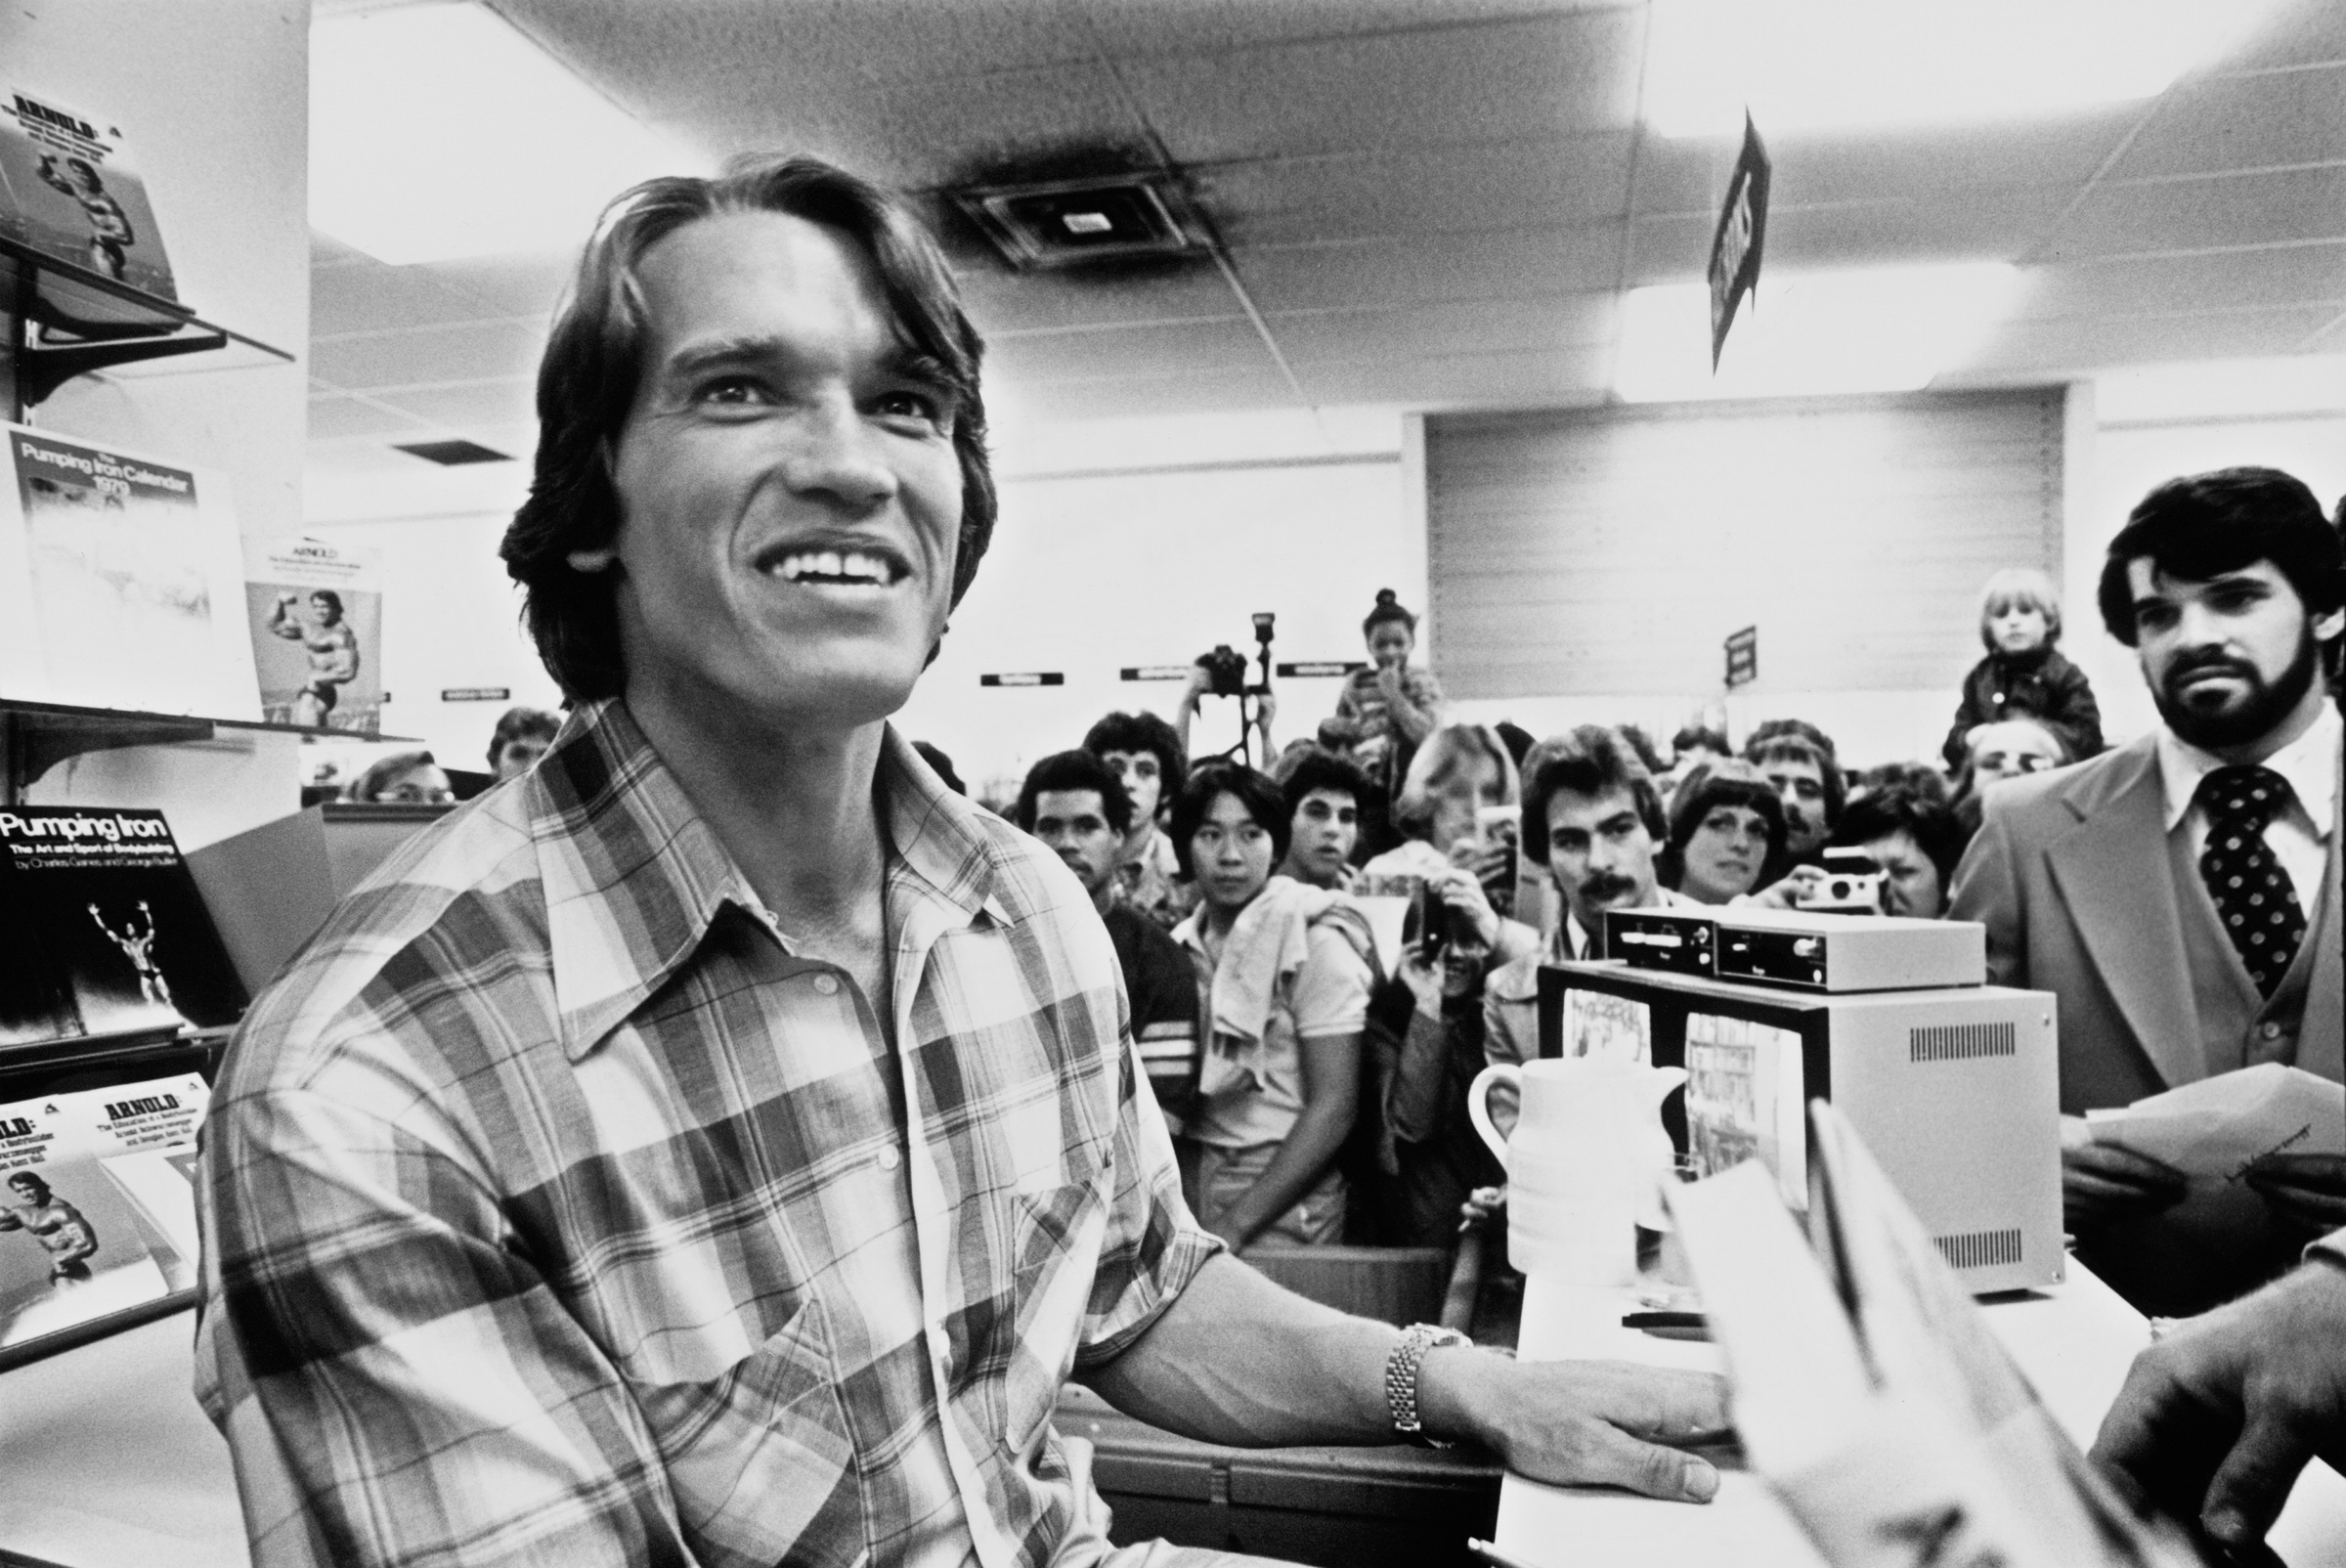 Arnold Schwarzenegger meets fans at a book signing for his autobiography/weight-training guide, 'Arnold: The Education of a B